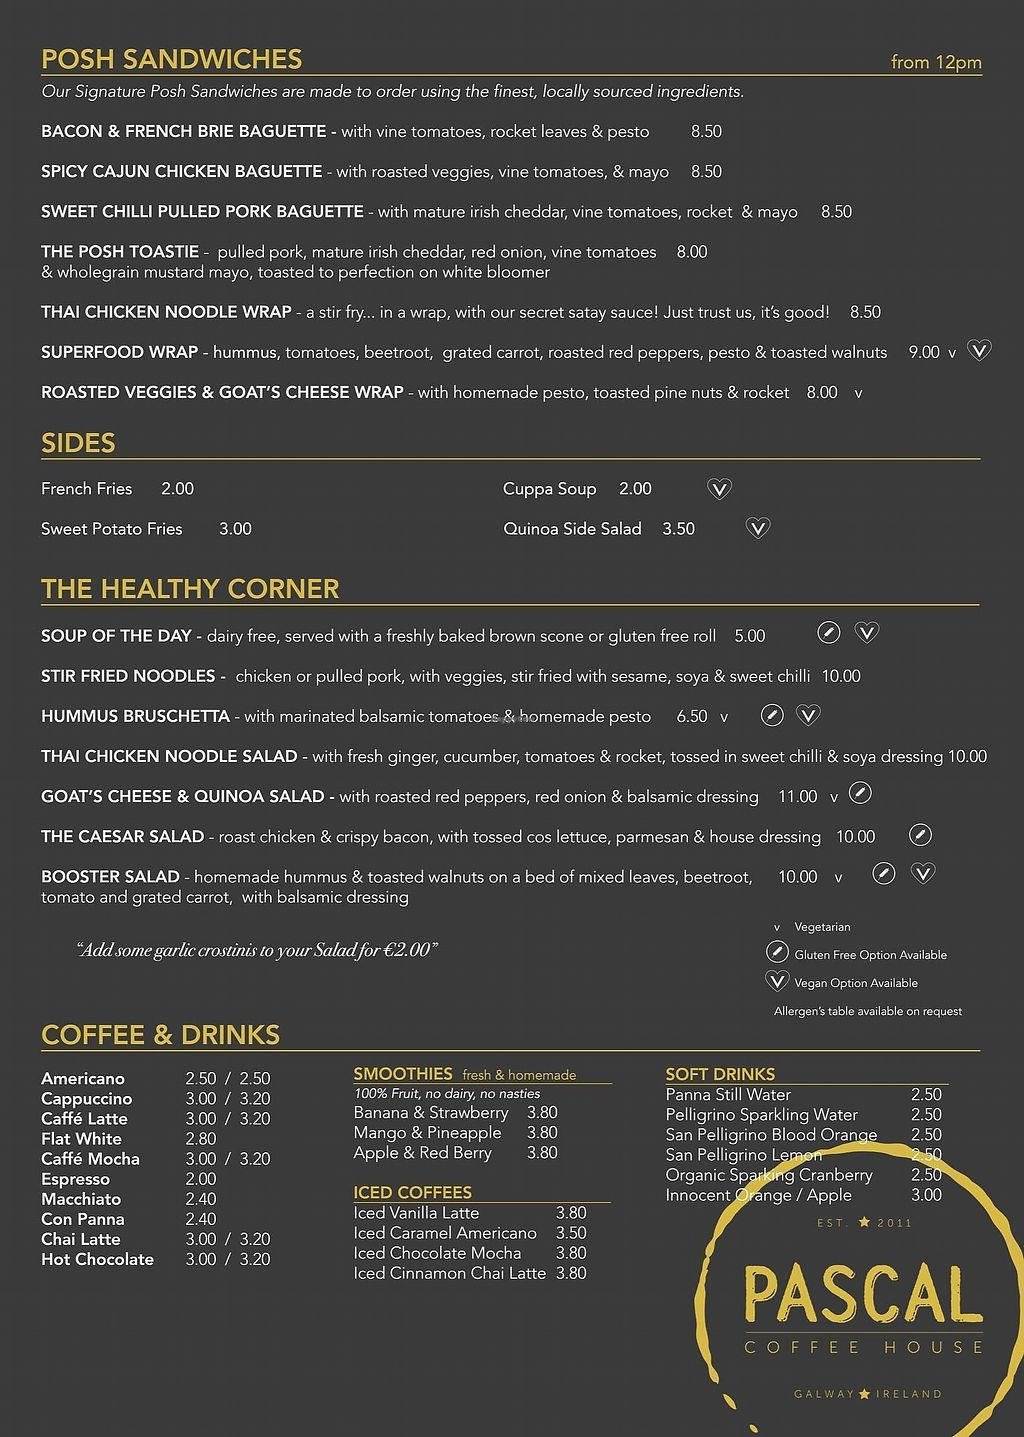 """Photo of Pascal Coffee House - Edward Square  by <a href=""""/members/profile/AvrilTkd"""">AvrilTkd</a> <br/>Menu 2 <br/> August 18, 2017  - <a href='/contact/abuse/image/98900/294087'>Report</a>"""